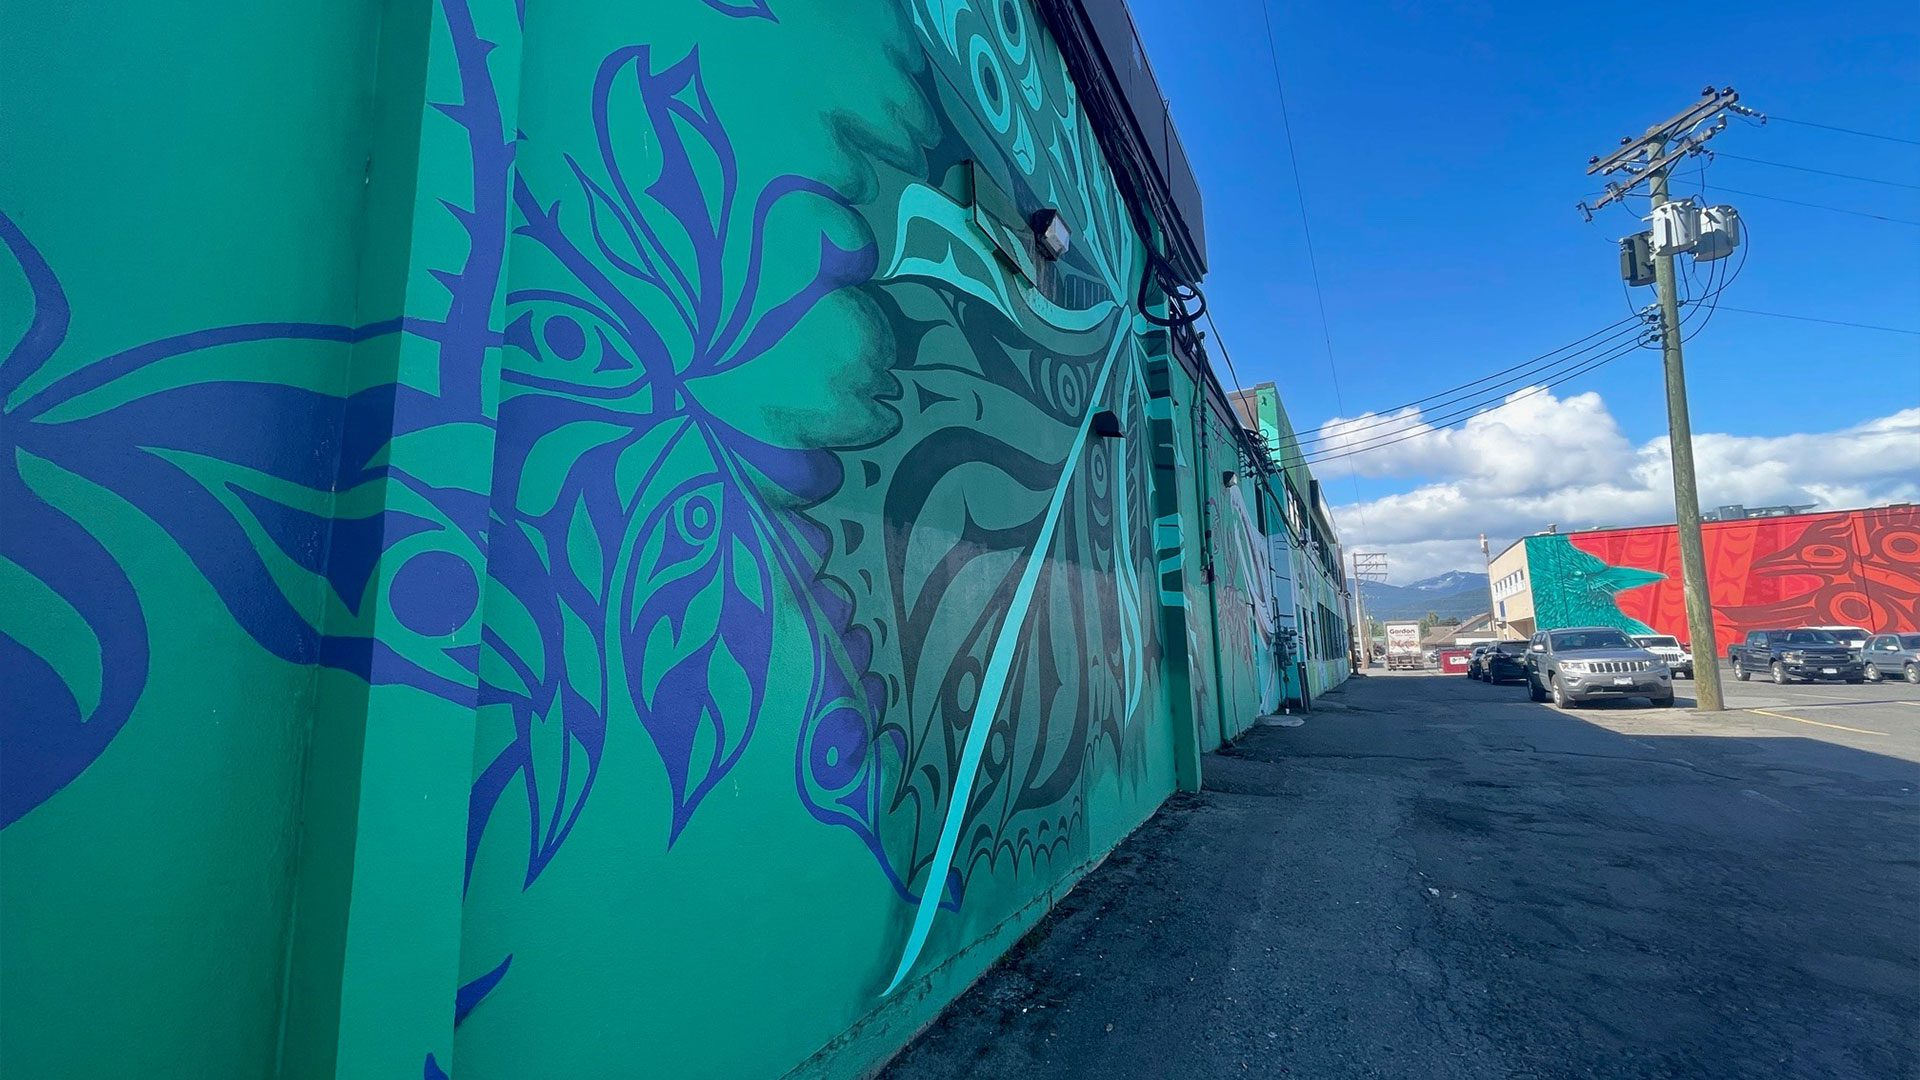 Artists going for 'Wow' factor with MMIWG mural - APTN News